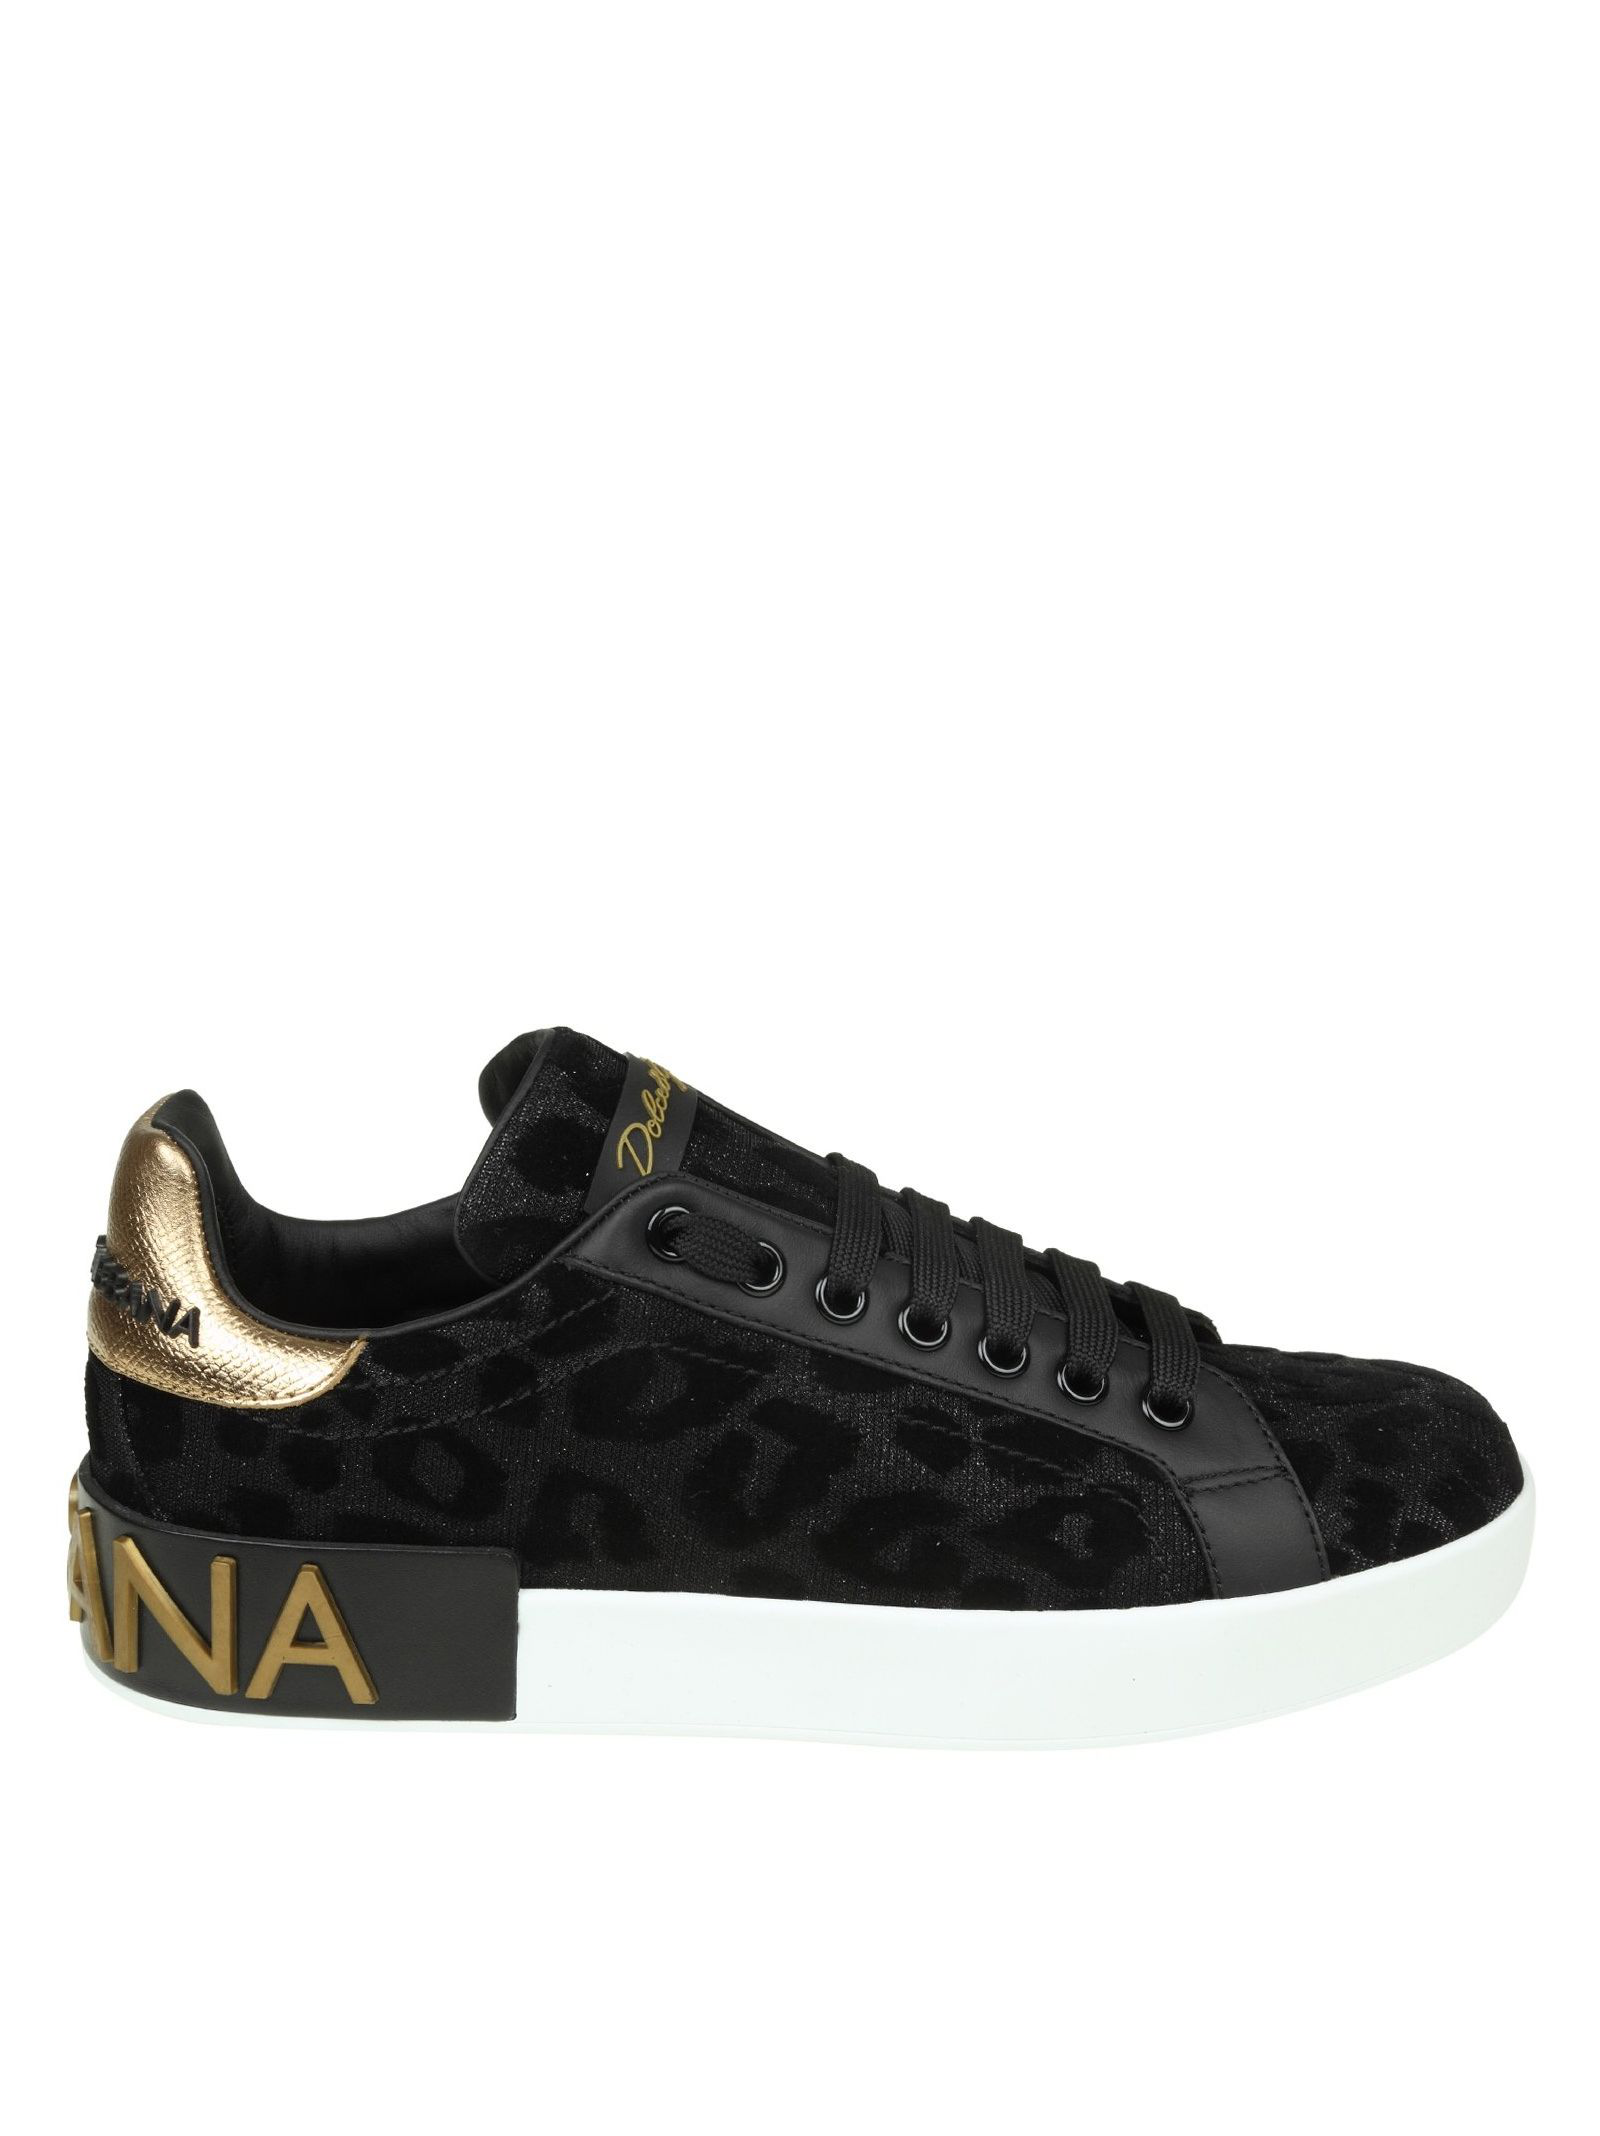 ad6b39d716b2 Dolce & Gabbana Portofino Sneakers In Fabric Lurex Effect Black With V In  8B956 Black/